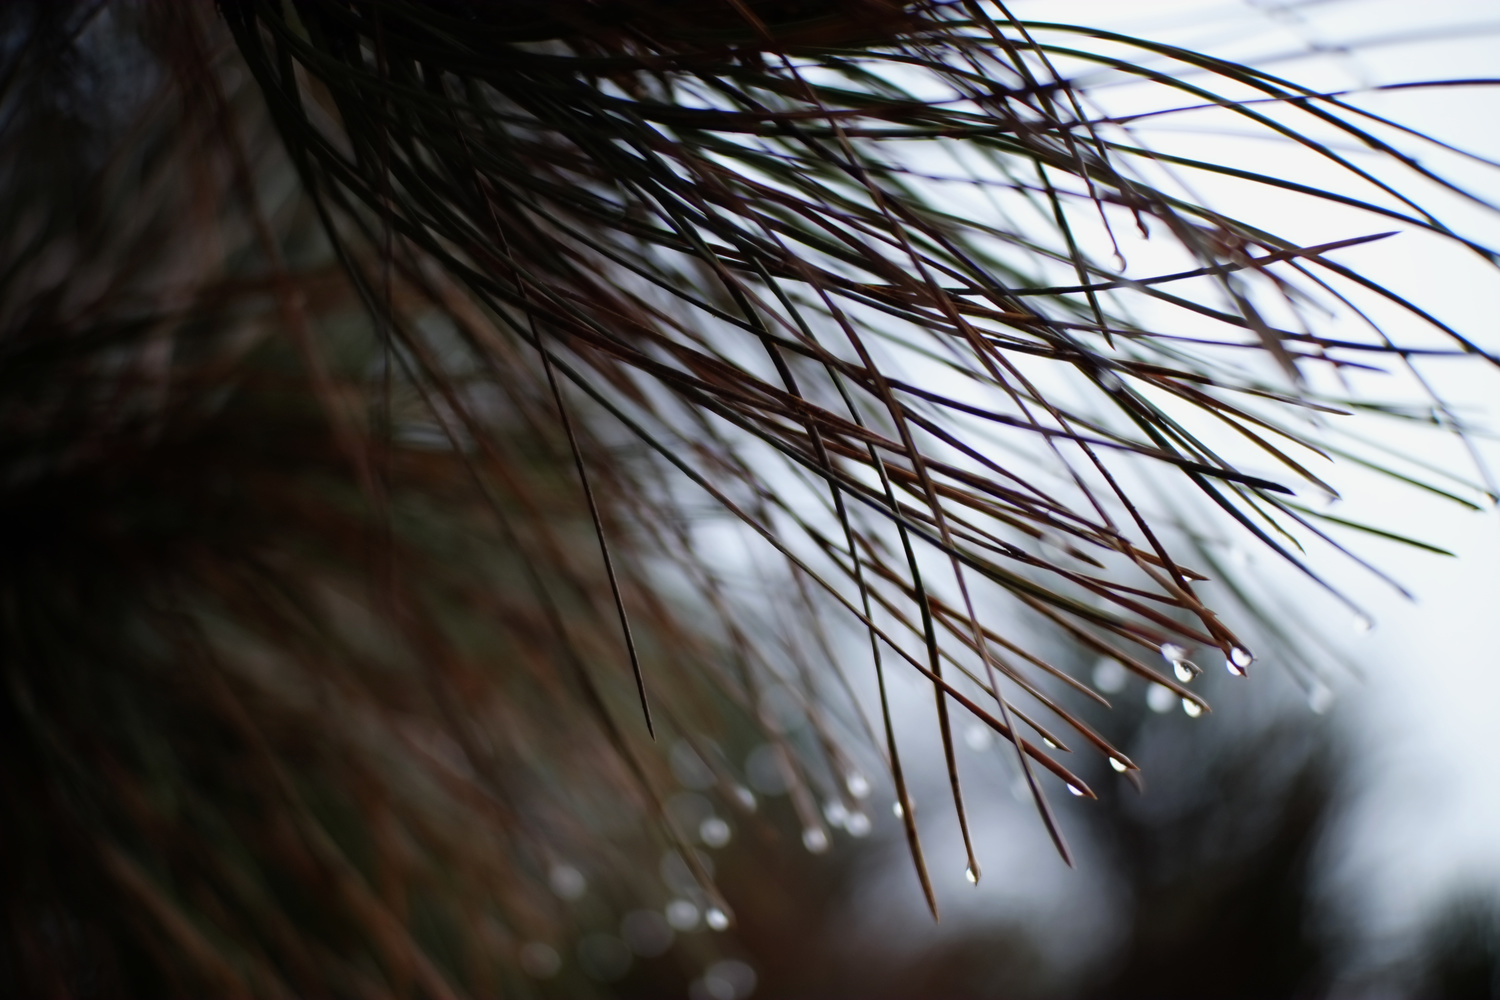 Needles and Droplets by Andy Peterson